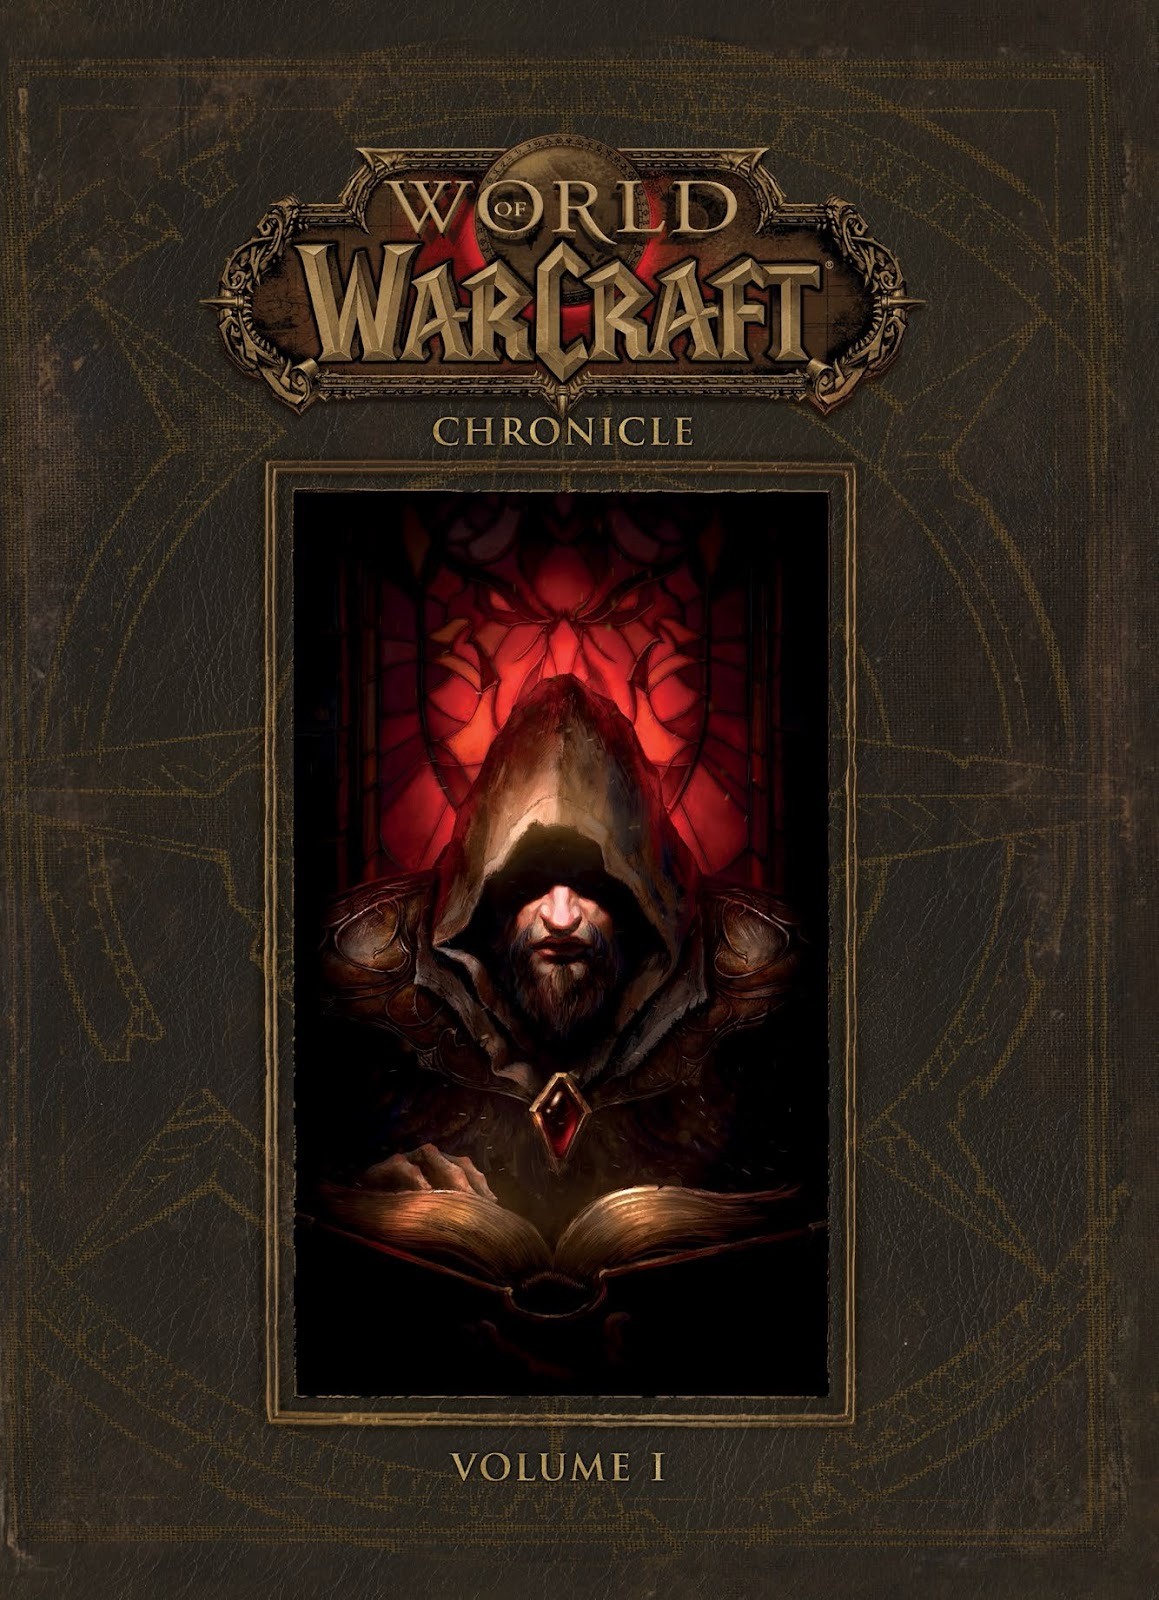 World_of_Warcraft_Chronicle_Volume_1.jpg